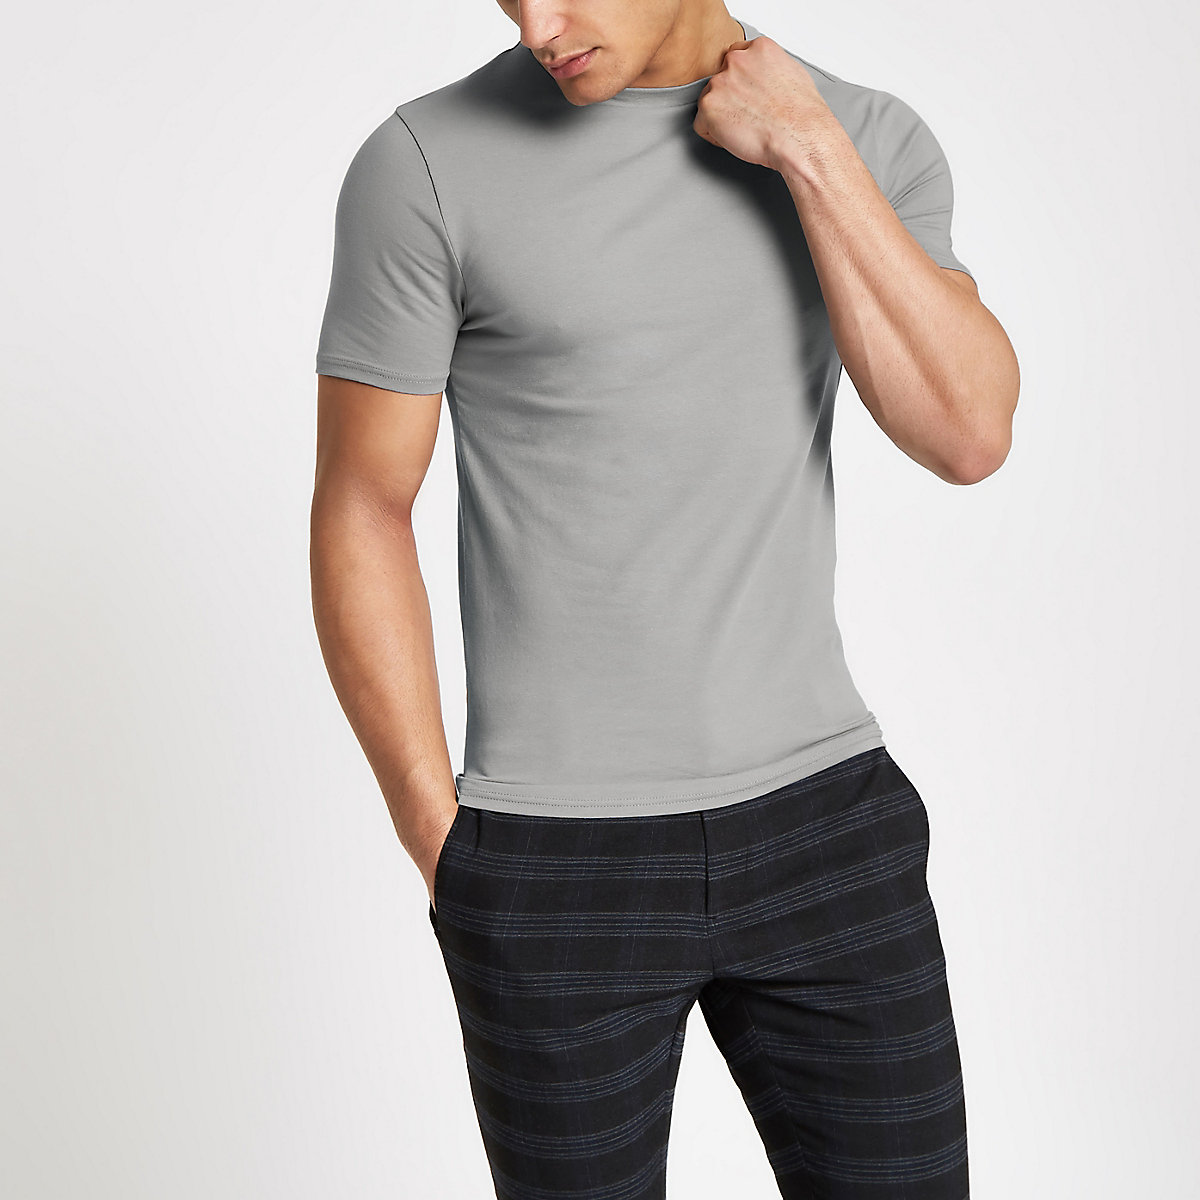 Grey muscle fit short sleeve T-shirt